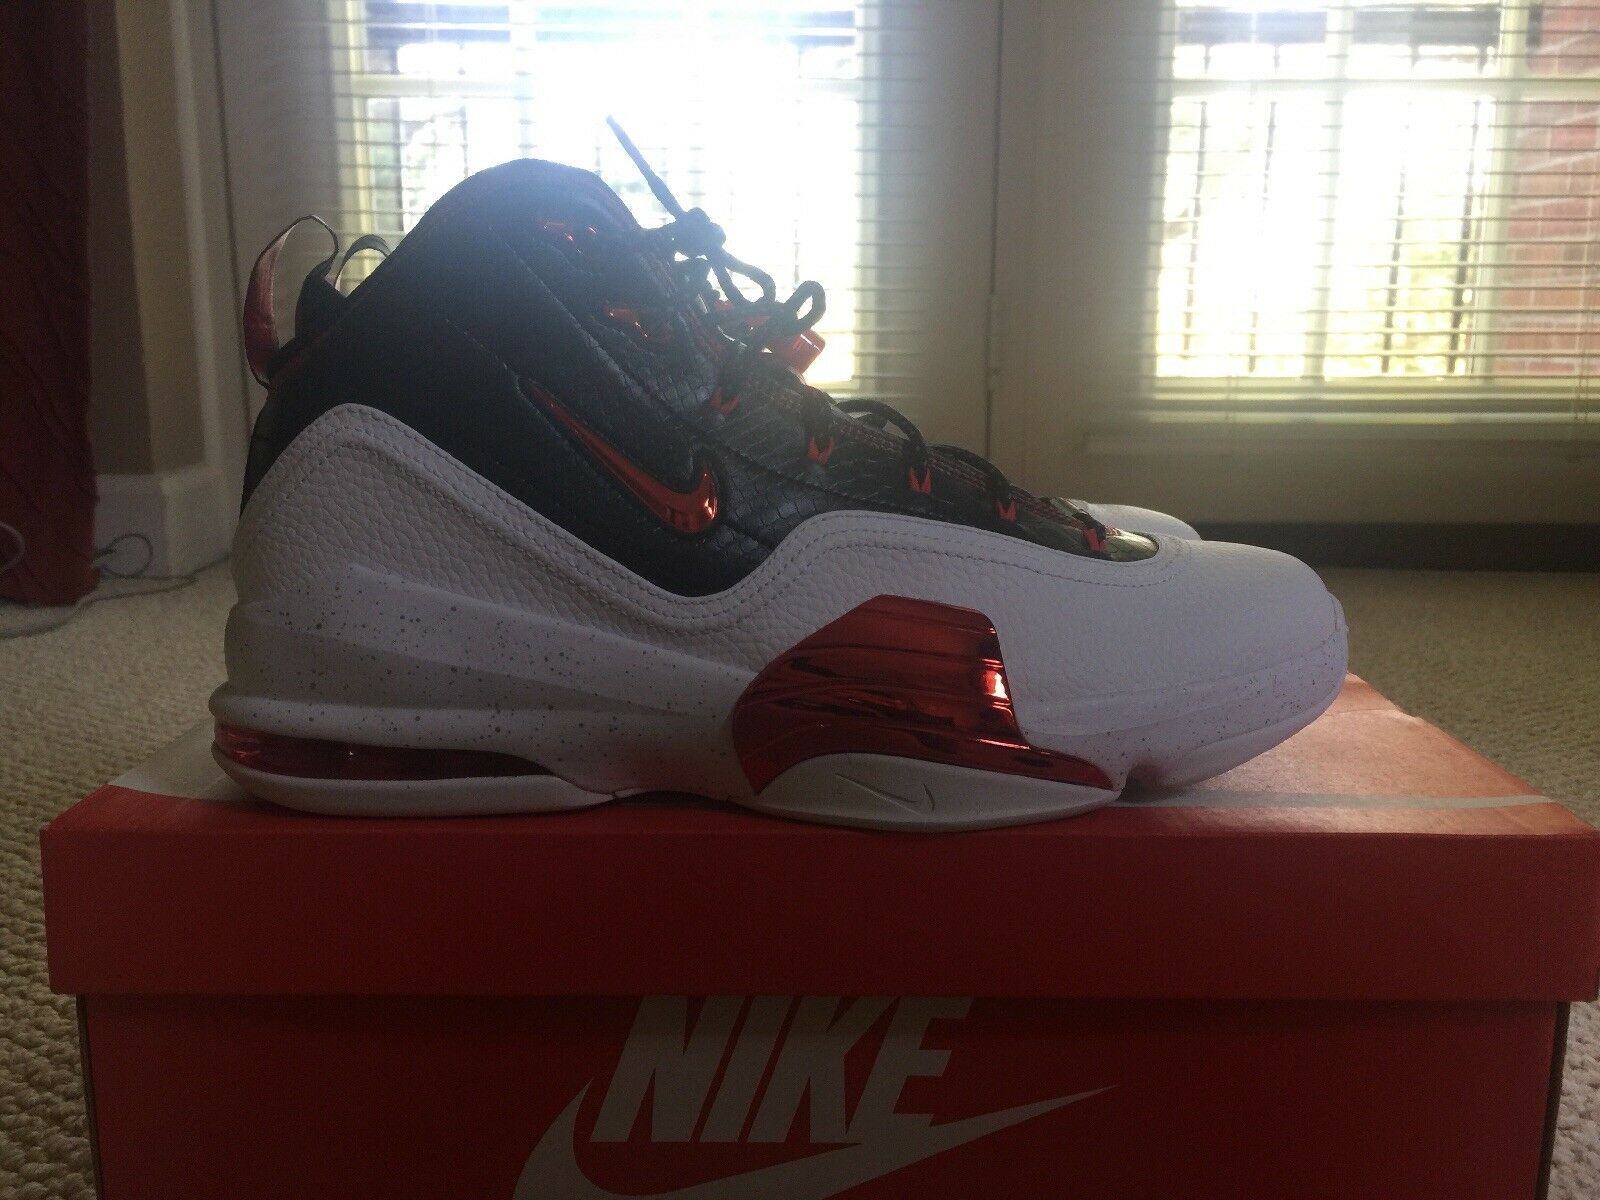 Nike Air Pippen 6 Black Red White Chicago Bulls Miami Heat Leather New Size 12